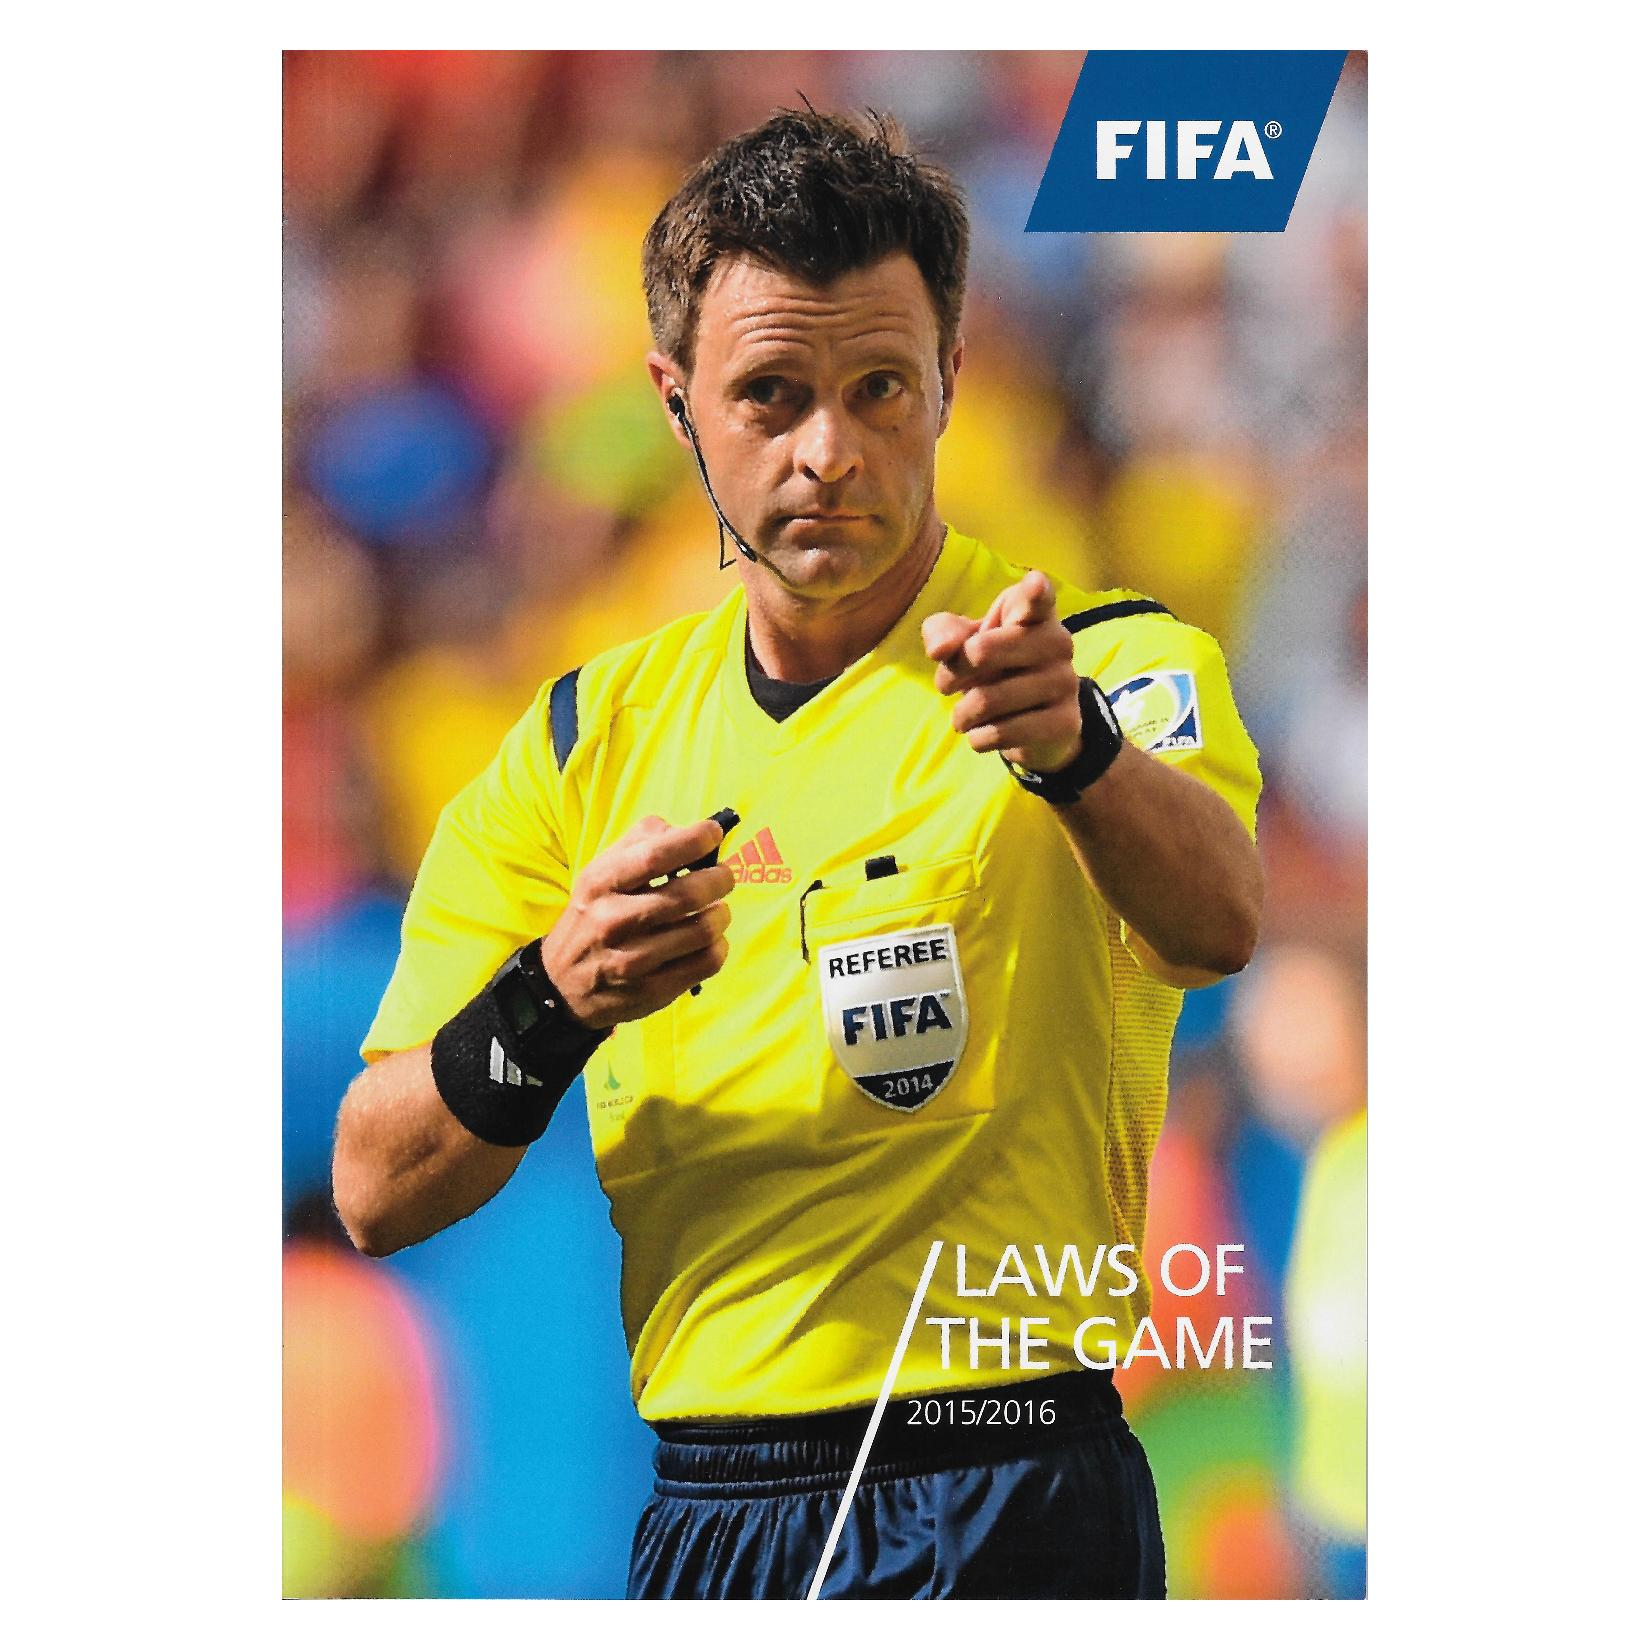 FA Laws Of The Game - Book Misc-1-2108-4442